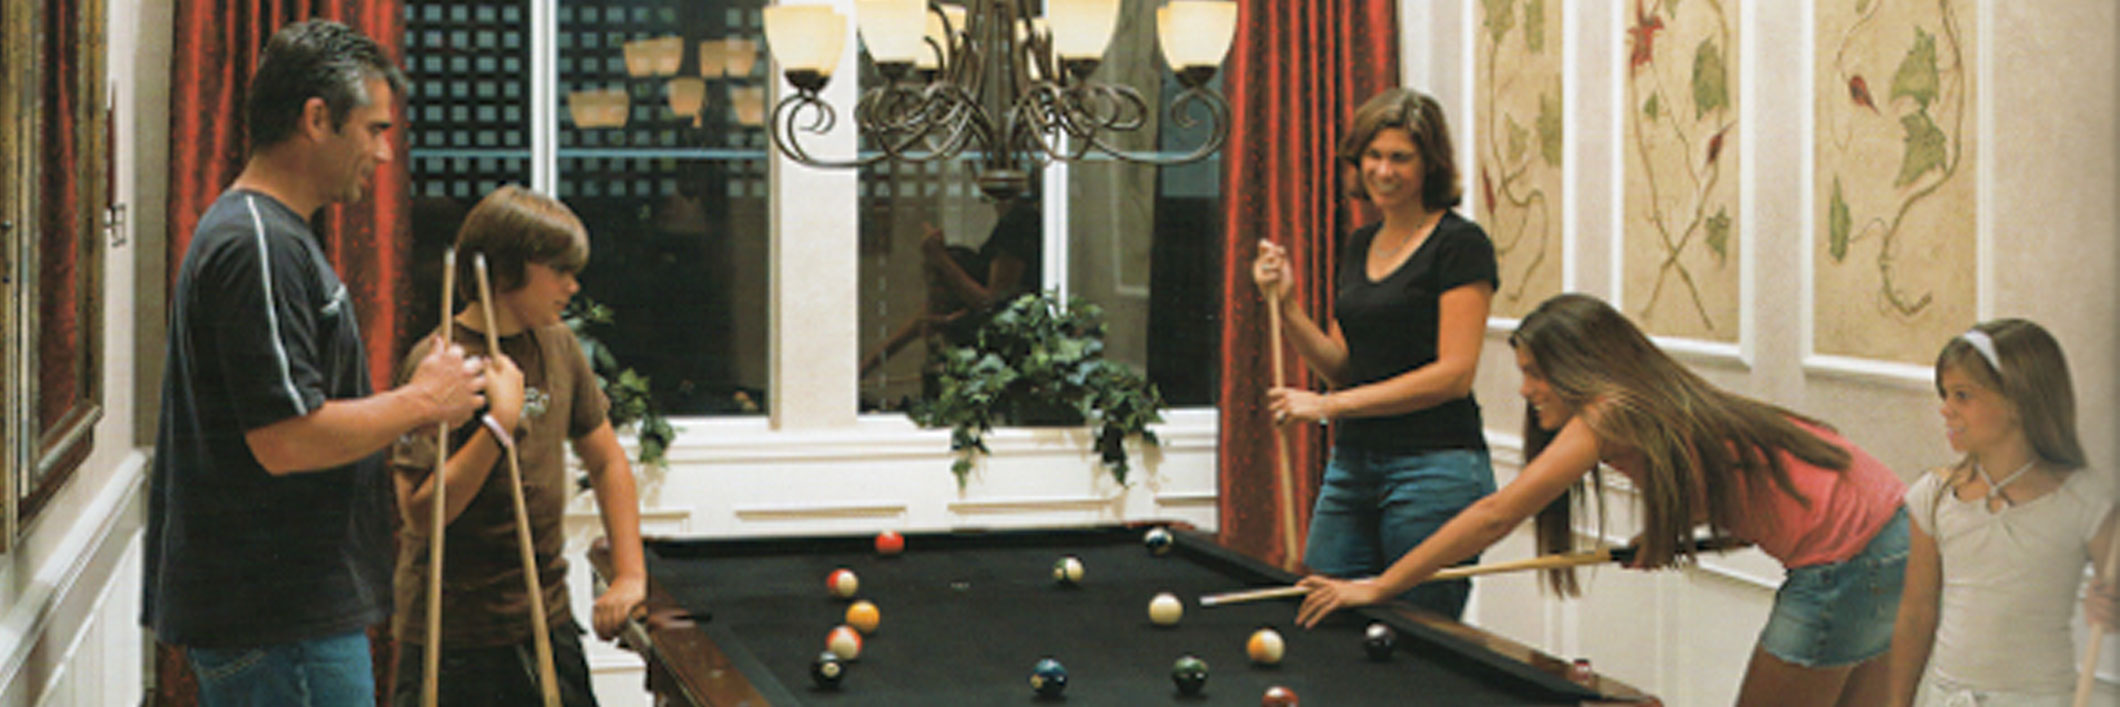 630.834.1220 Cue-N-Cushion, Pool Tables, Billiards in Chicago area Visit Cue-N-Cushion for great recreation ideas!